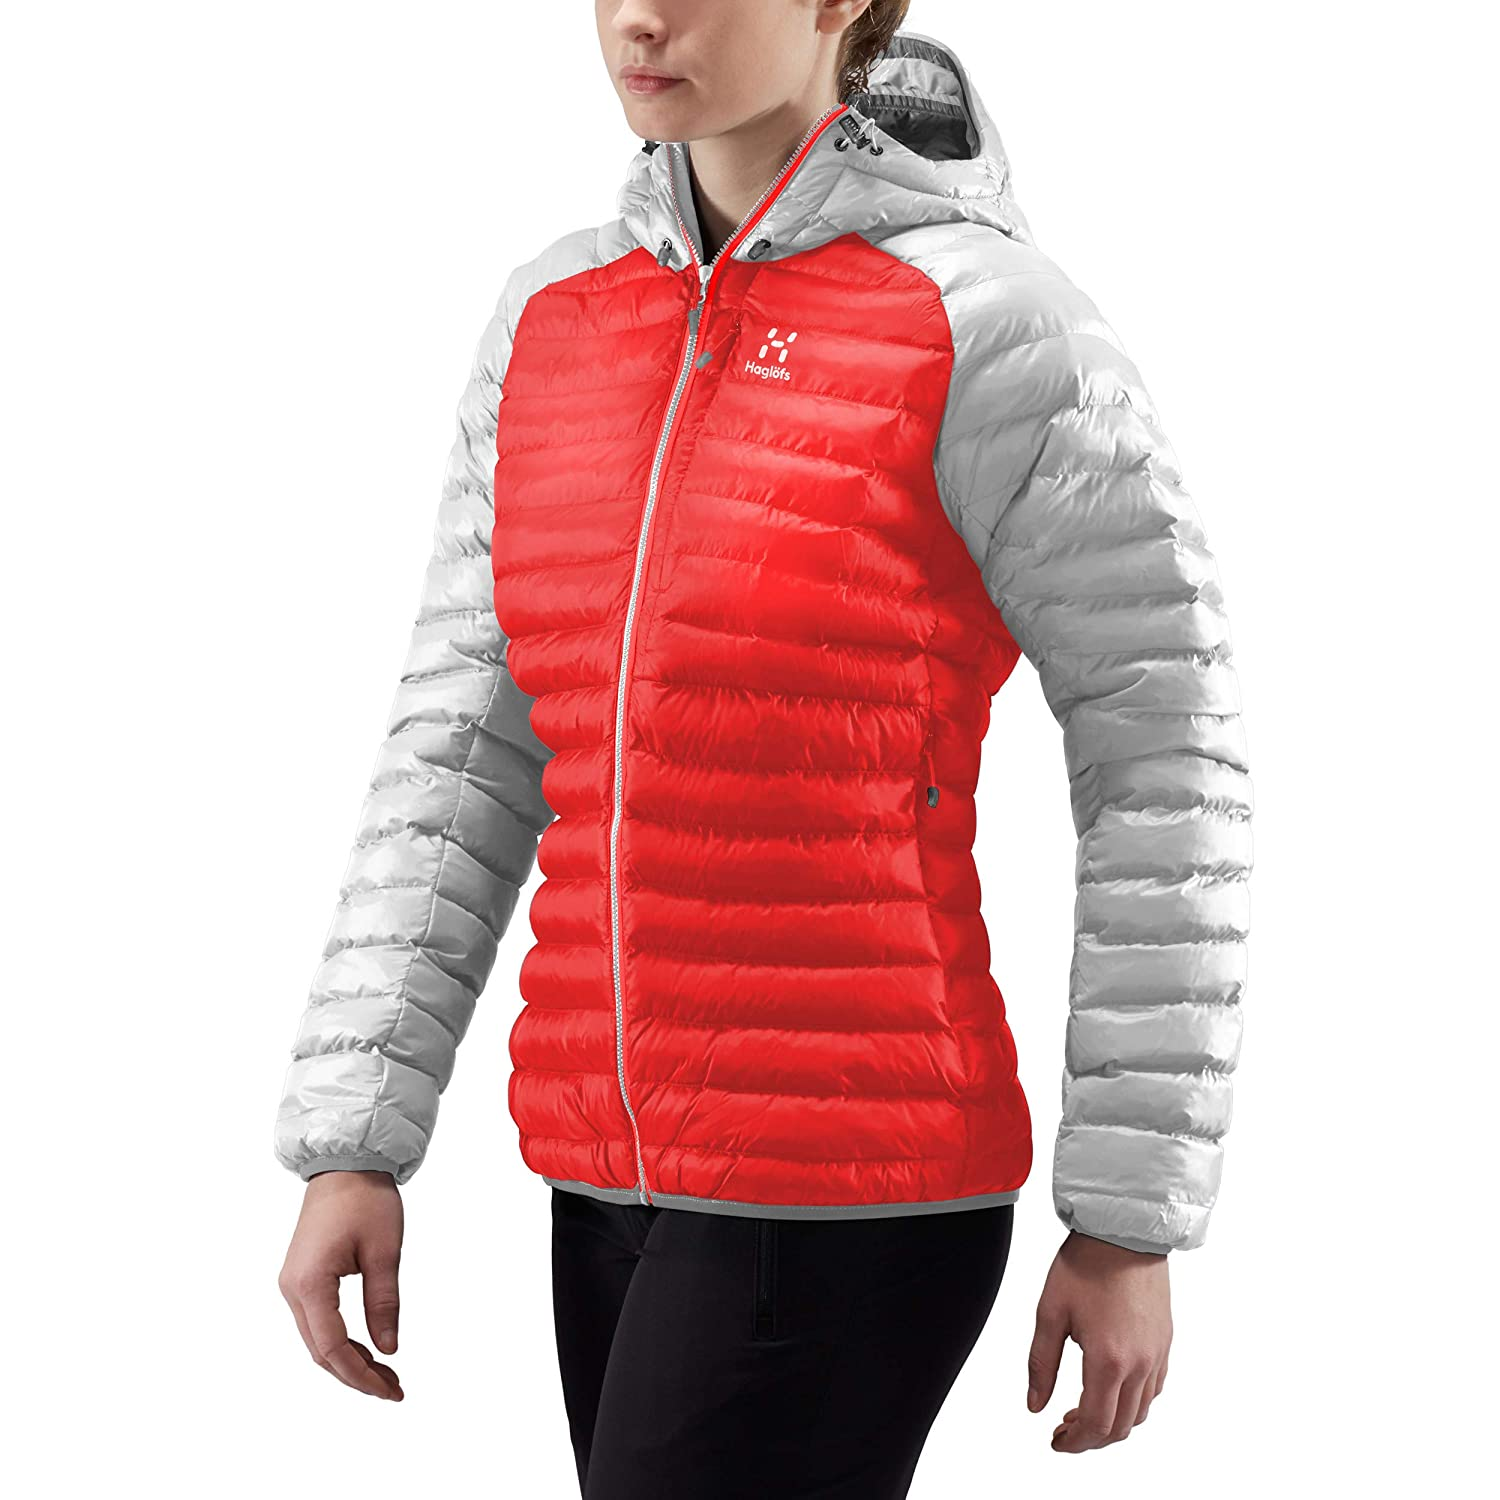 TALLA M. Haglöfs Essens Mimic Hood Chaqueta, Mujer, Pop Red/Haze, M